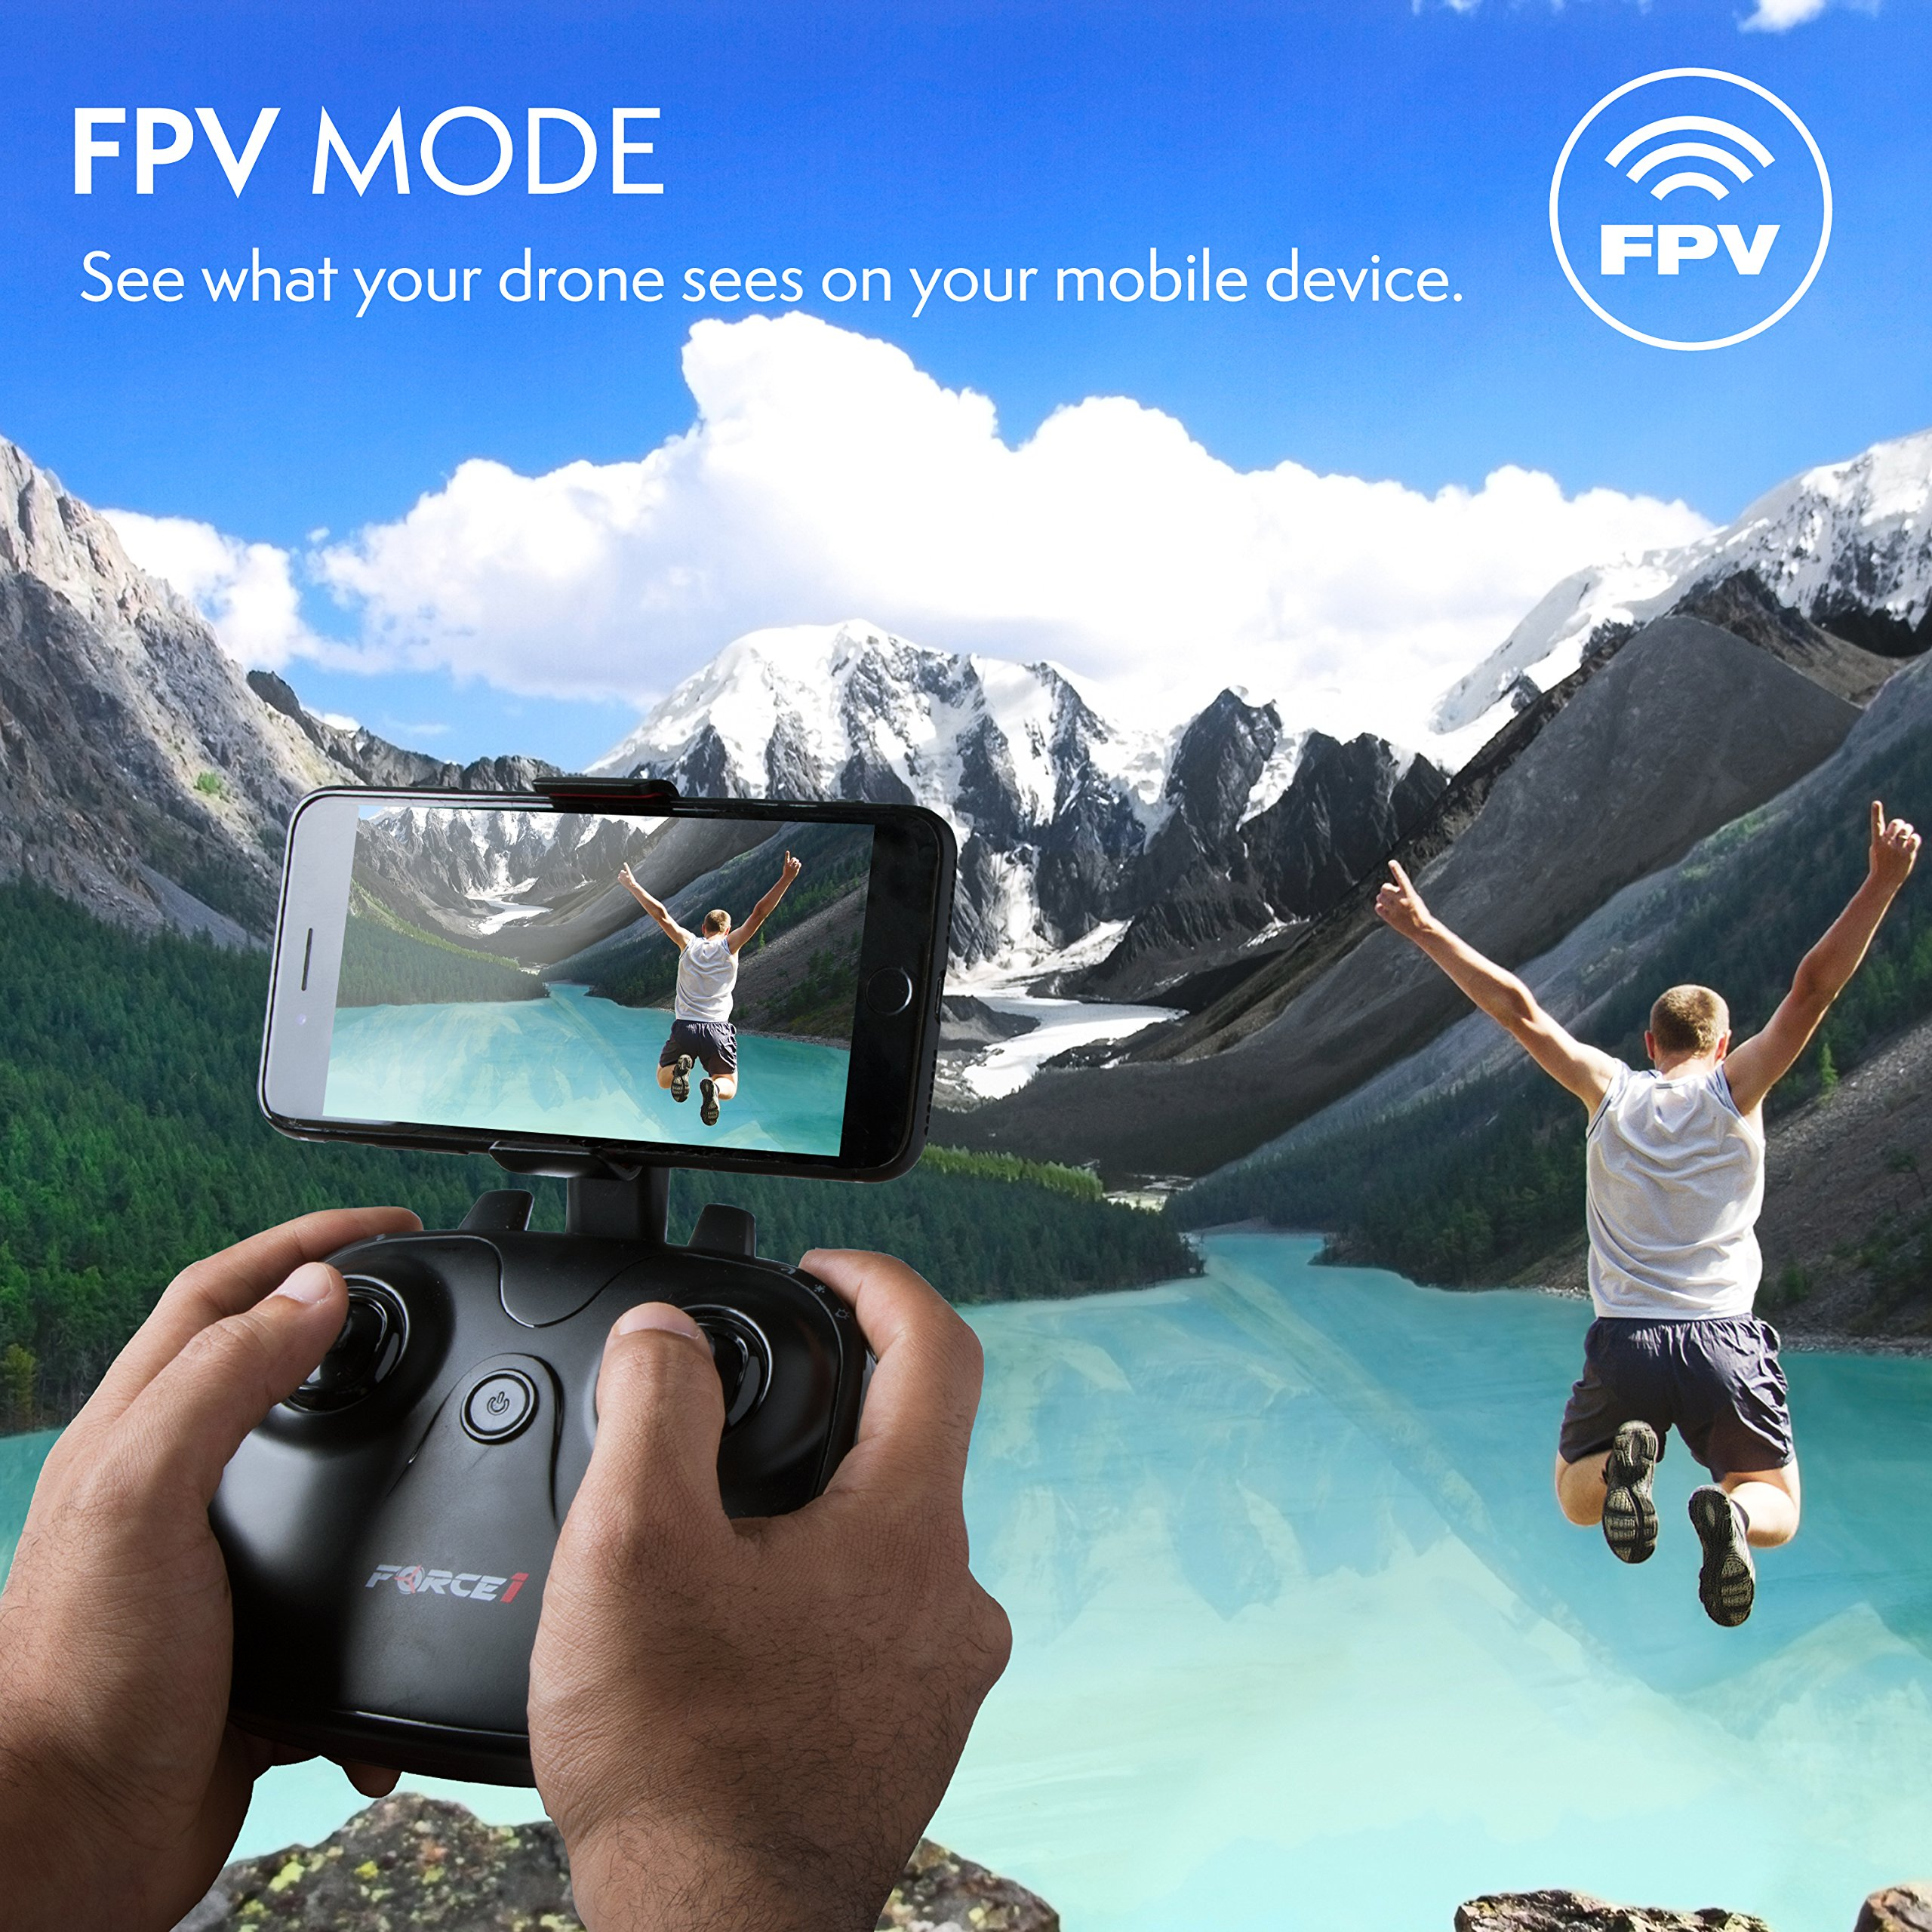 Force1 HD Drone with Camera – RC Camera Drones for Kids & Pros - U34W Dragonfly Drone with Camera Live Video, Altitude Hold & Wi-Fi FPV - Easy to Fly Quadcopter Drones for Beginners by Force1 (Image #5)